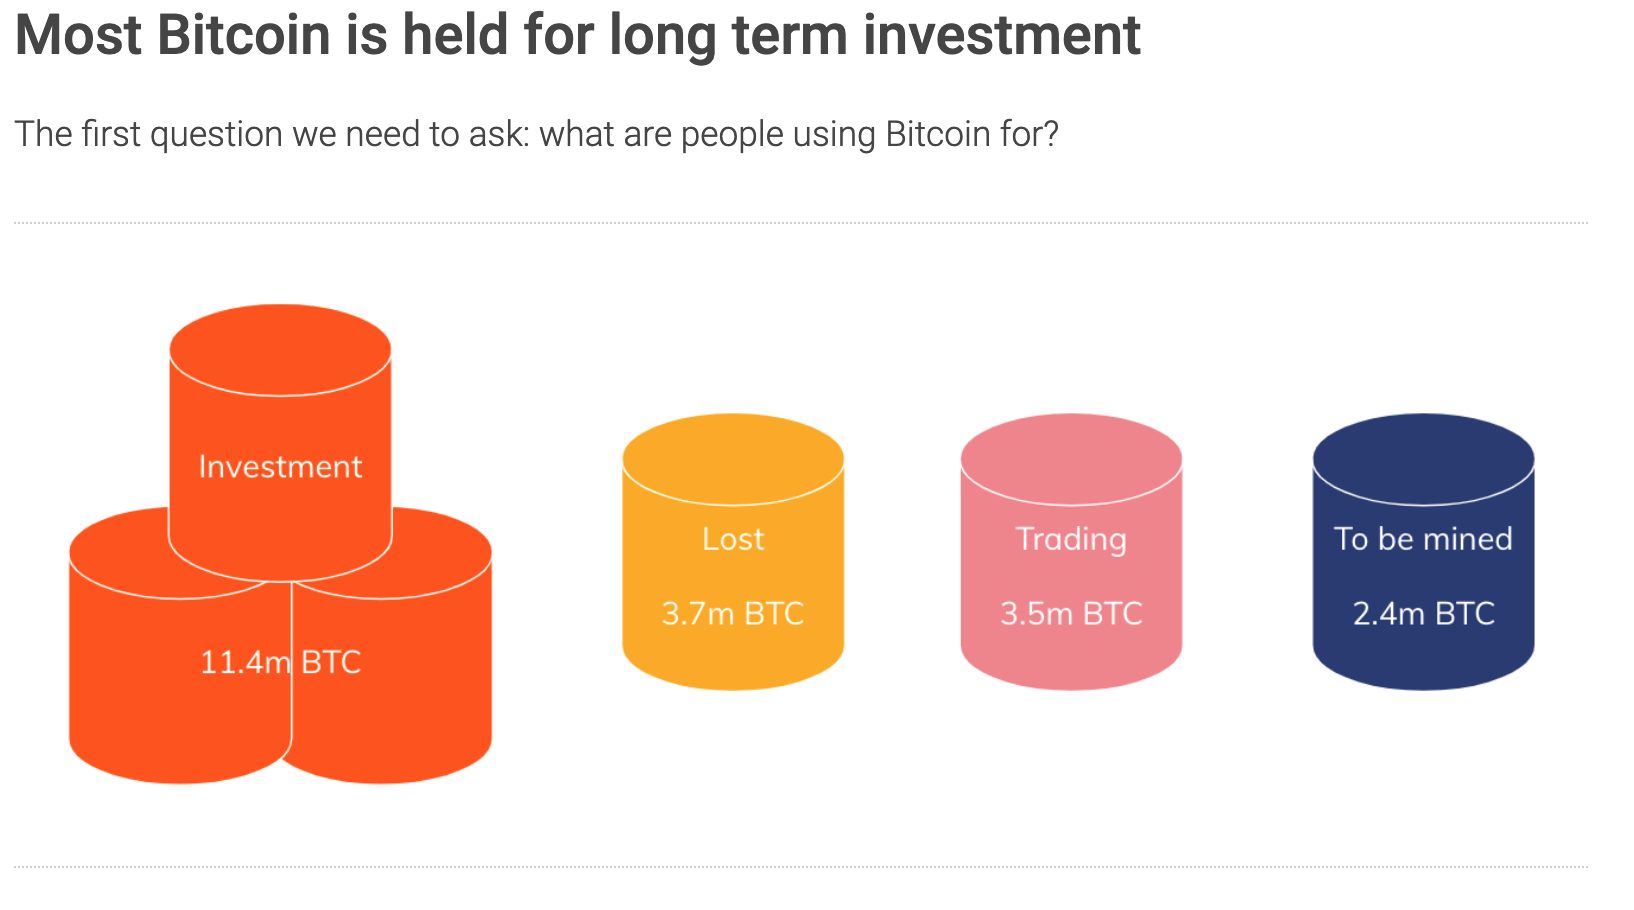 Most Bitcoin is held as long-term investment.